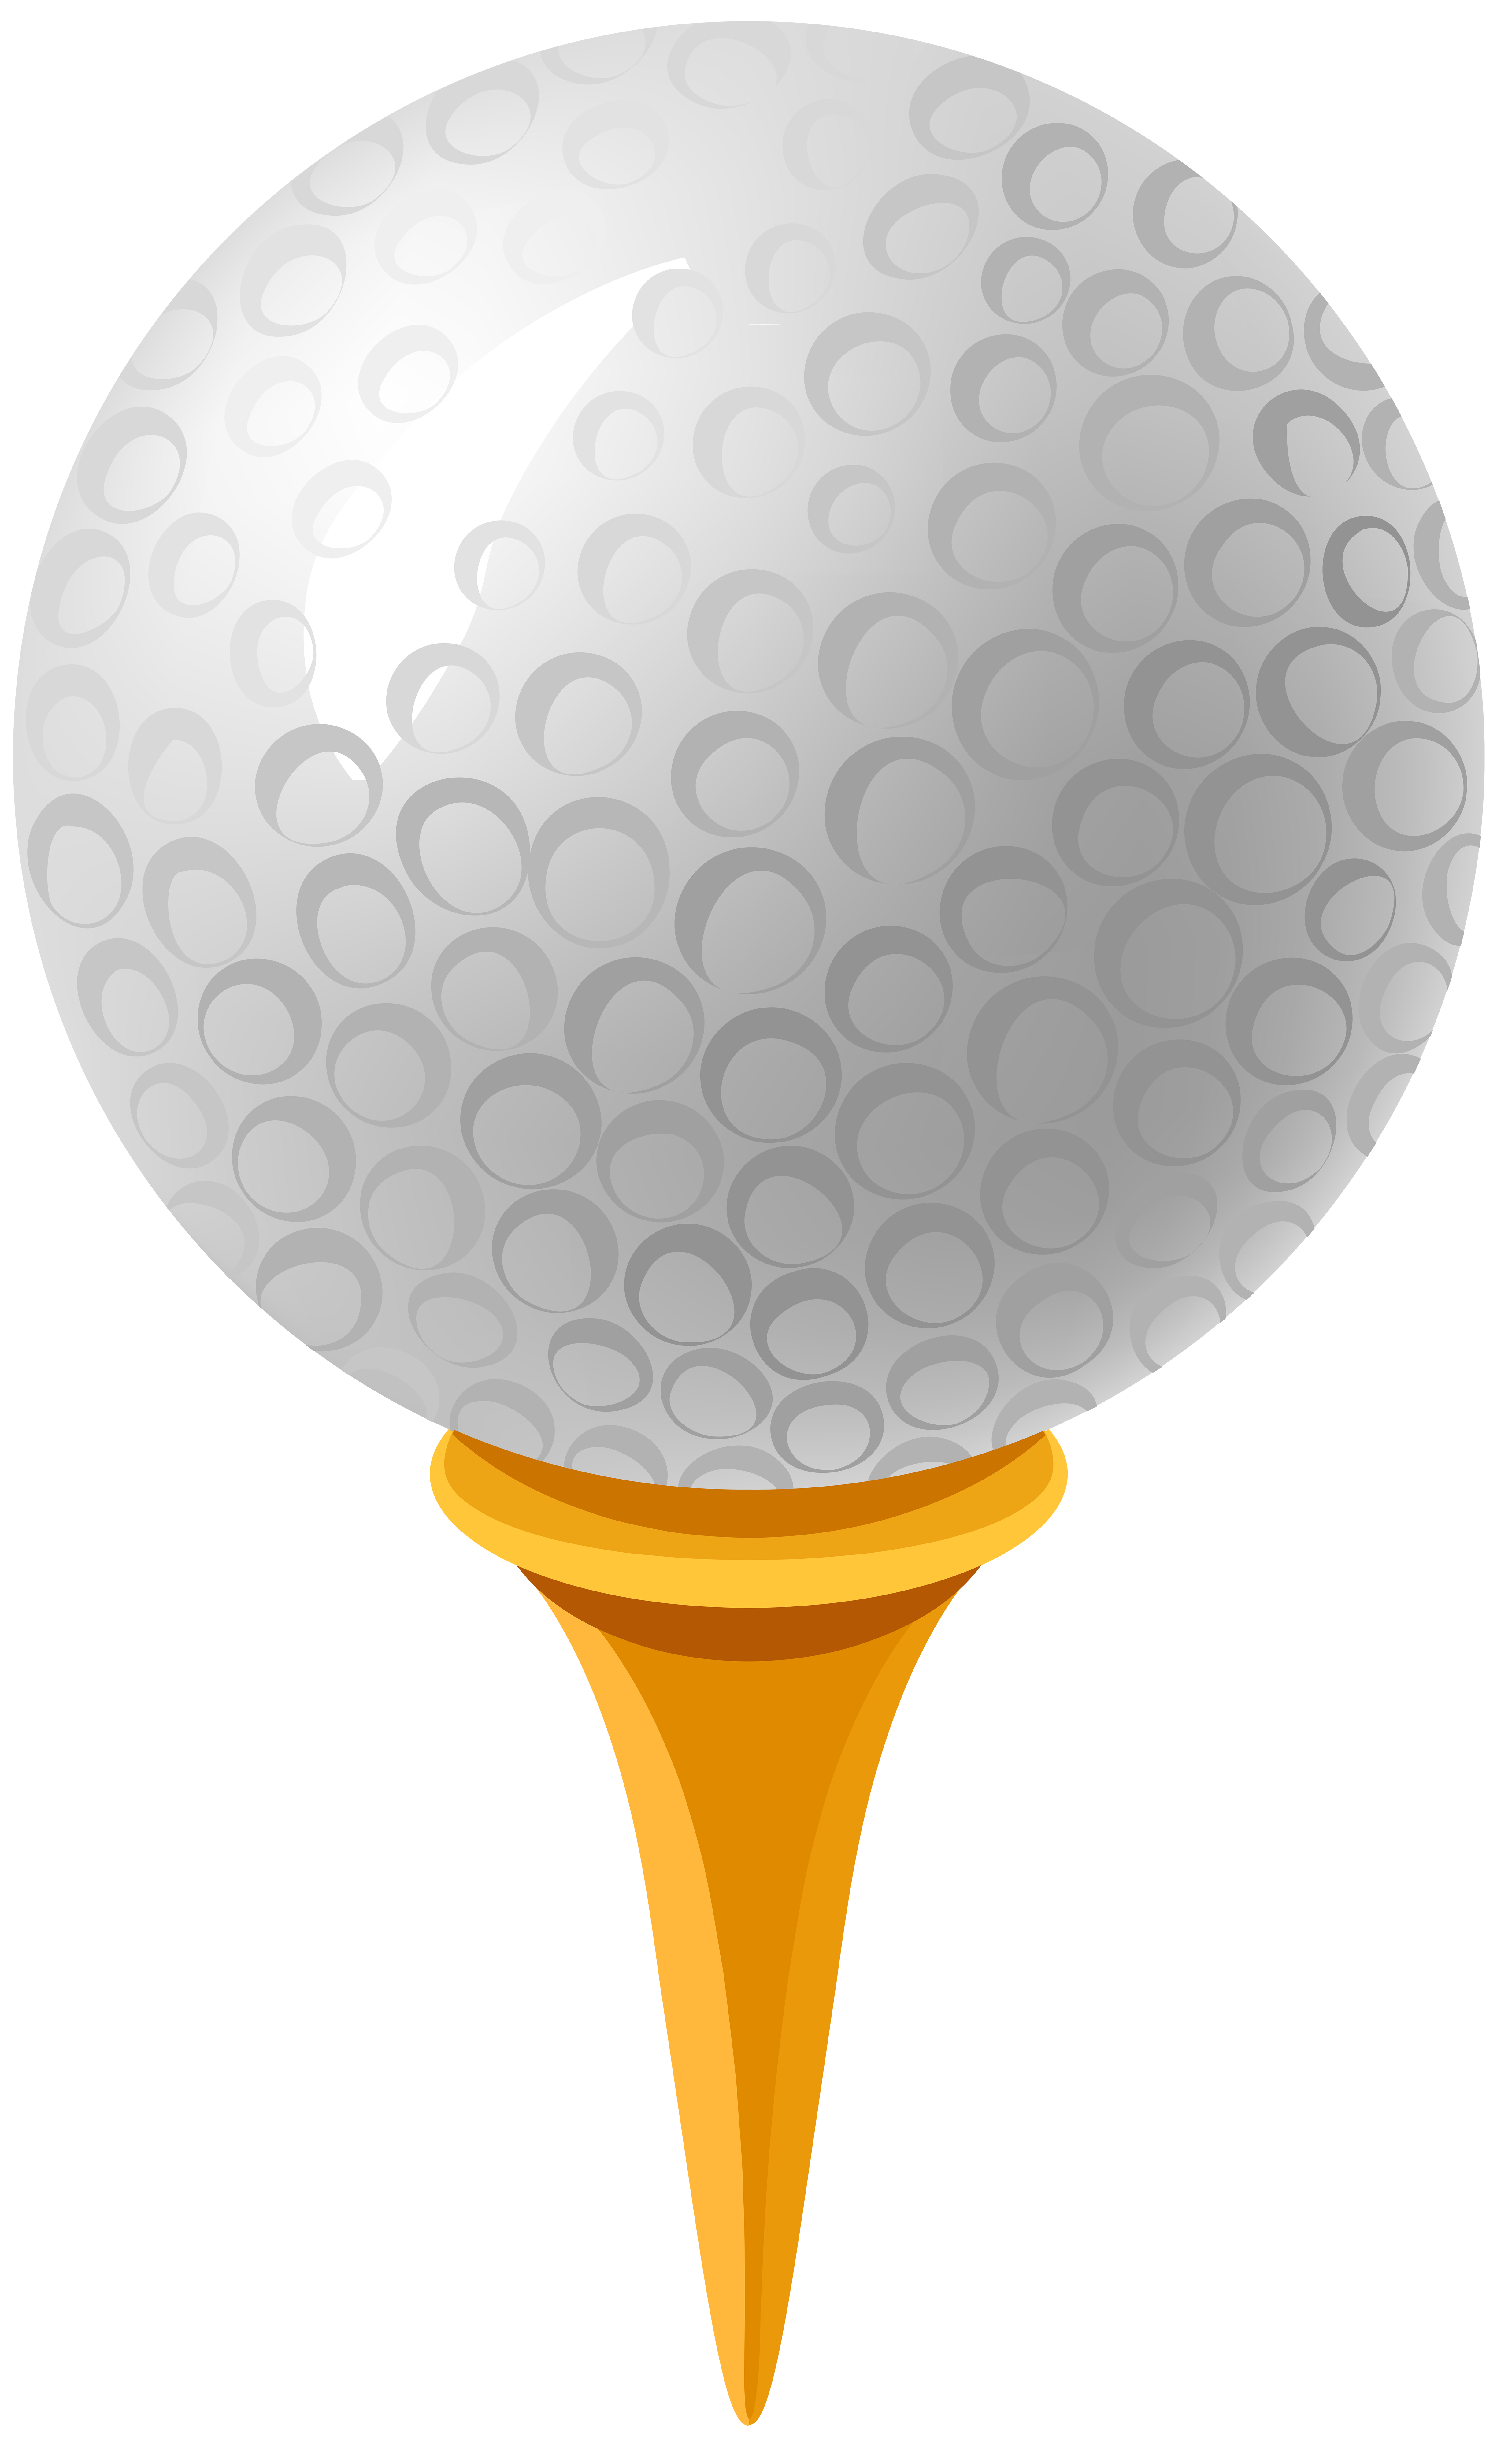 Golf ball clipart png. Clip art image gallery